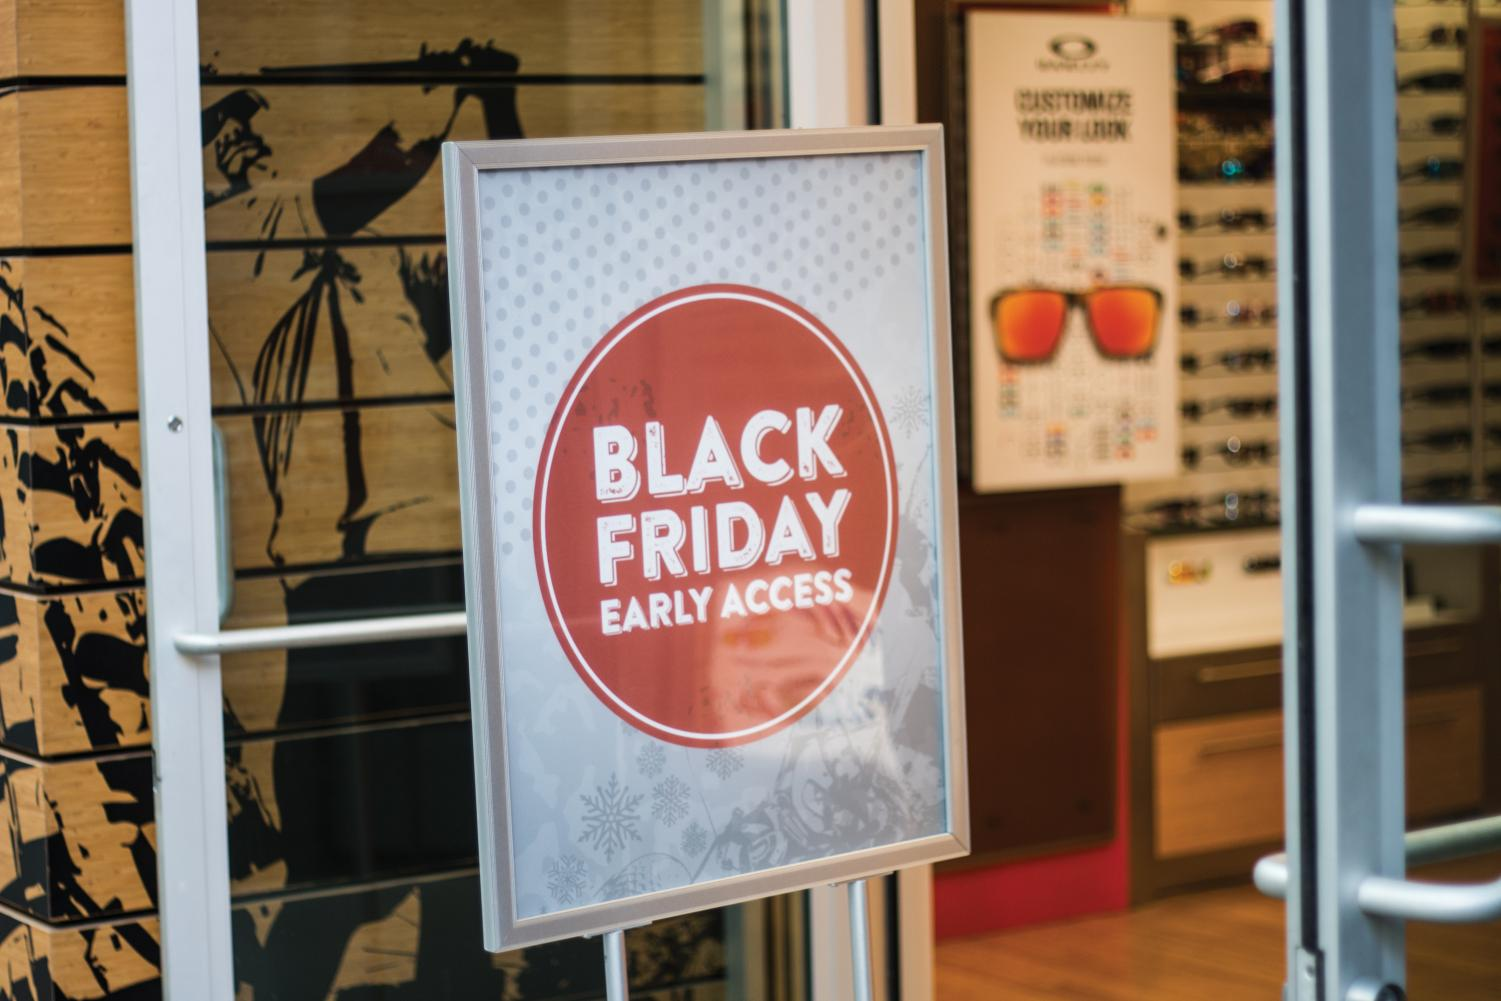 An advertisement for a Black Friday sale at City Creek Mall in Salt Lake City. (Photo by Cara MacDonald | Daily Utah Chronicle)